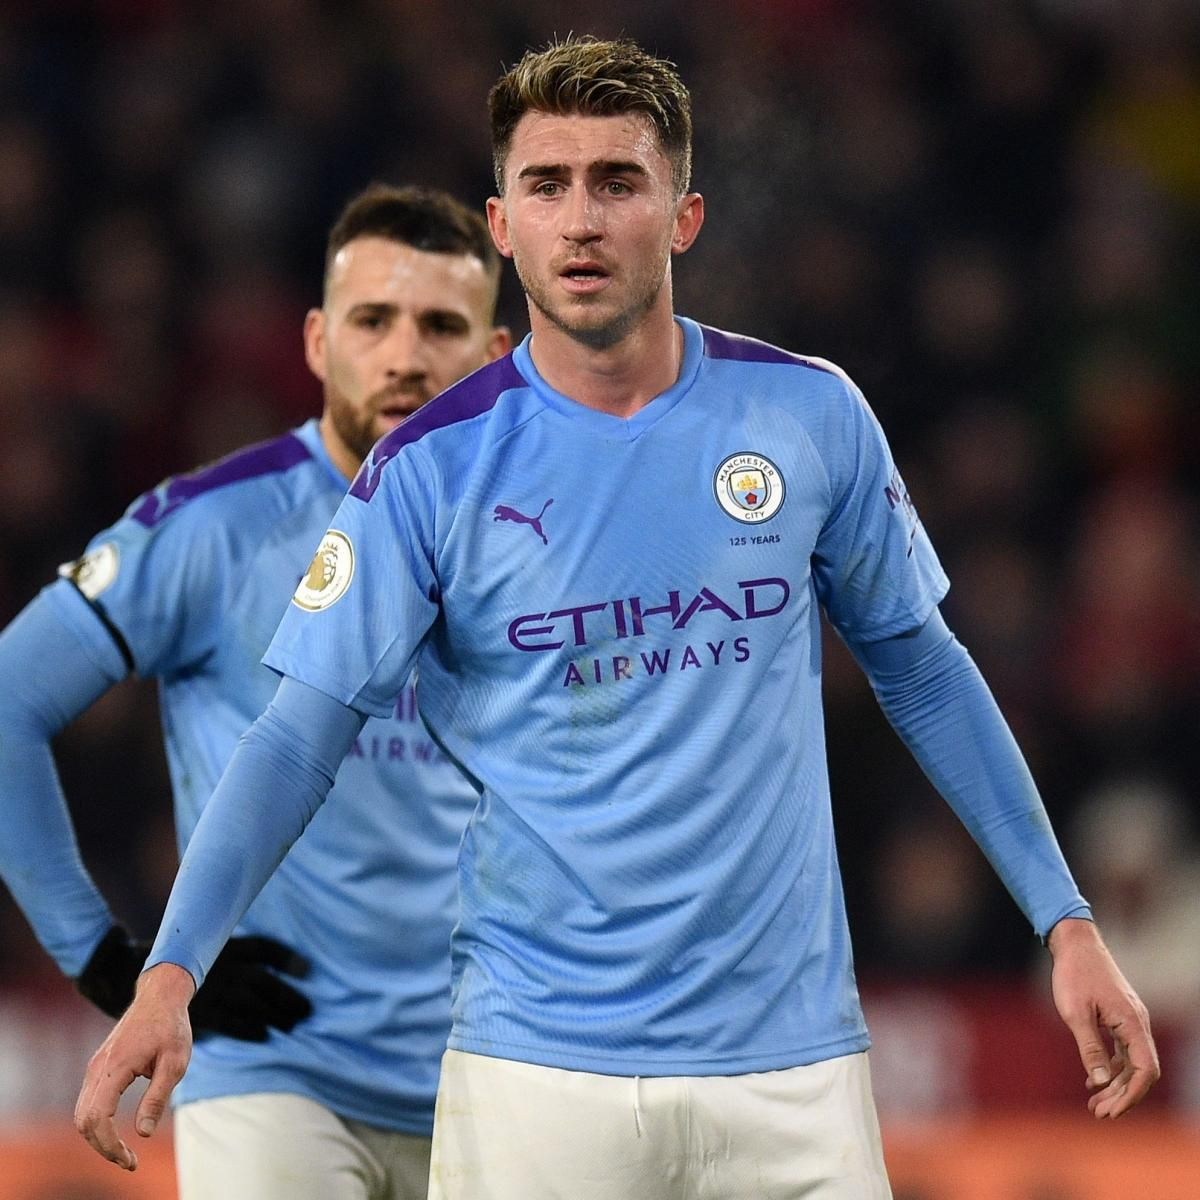 Pep Guardiola Says Aymeric Laporte Is 'OK' Ahead of Real